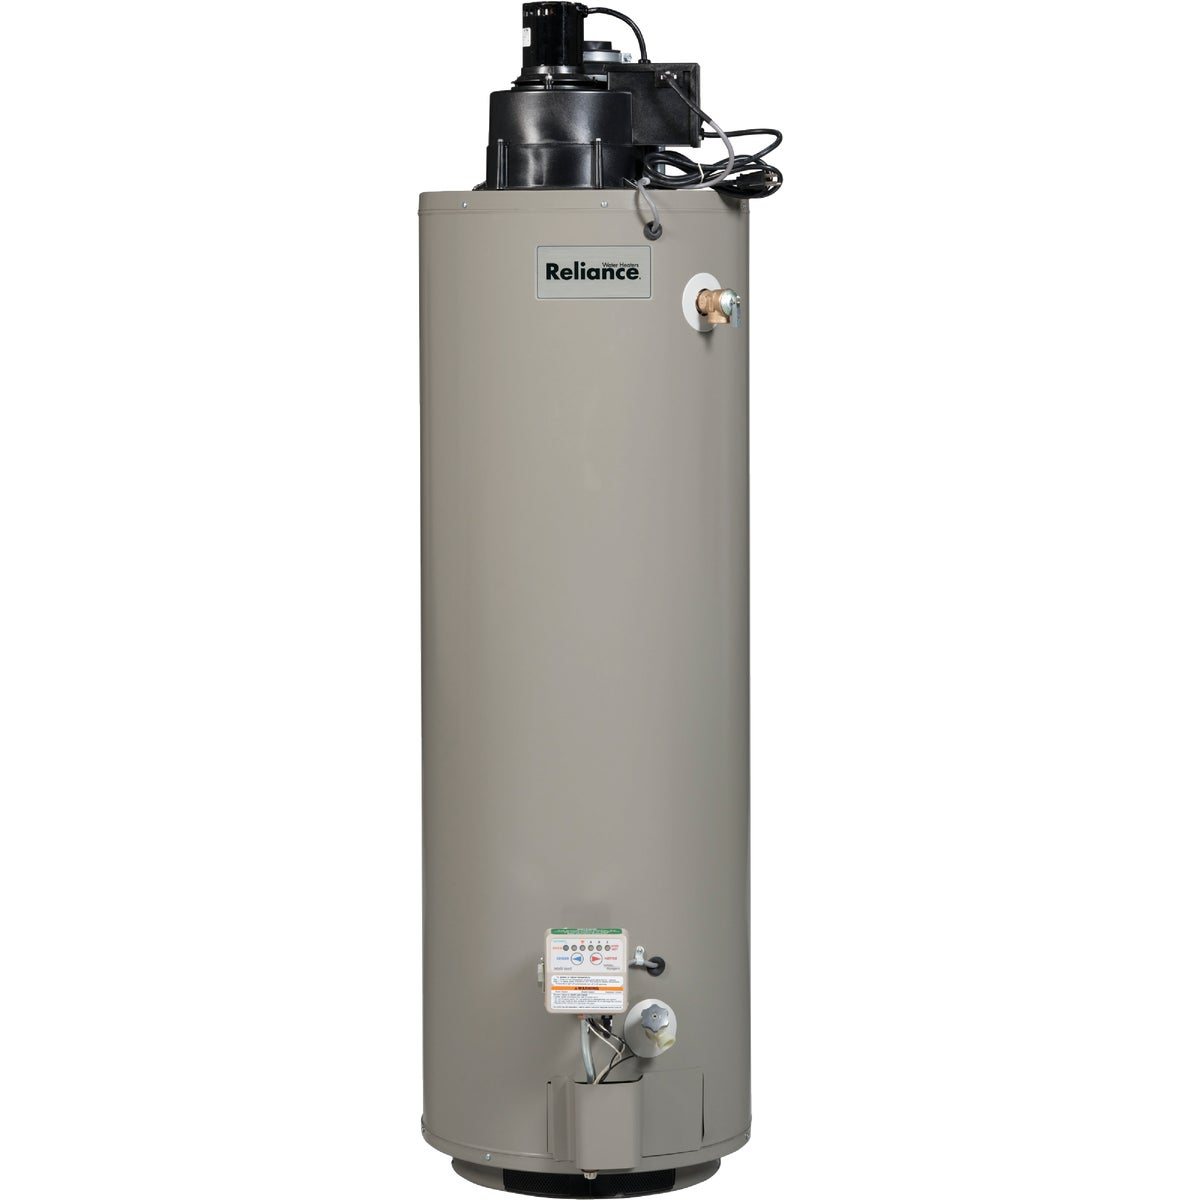 40GAL NAT GASPOWER-VENT - 6 40 YRVIT200 by Reliance Added Sales